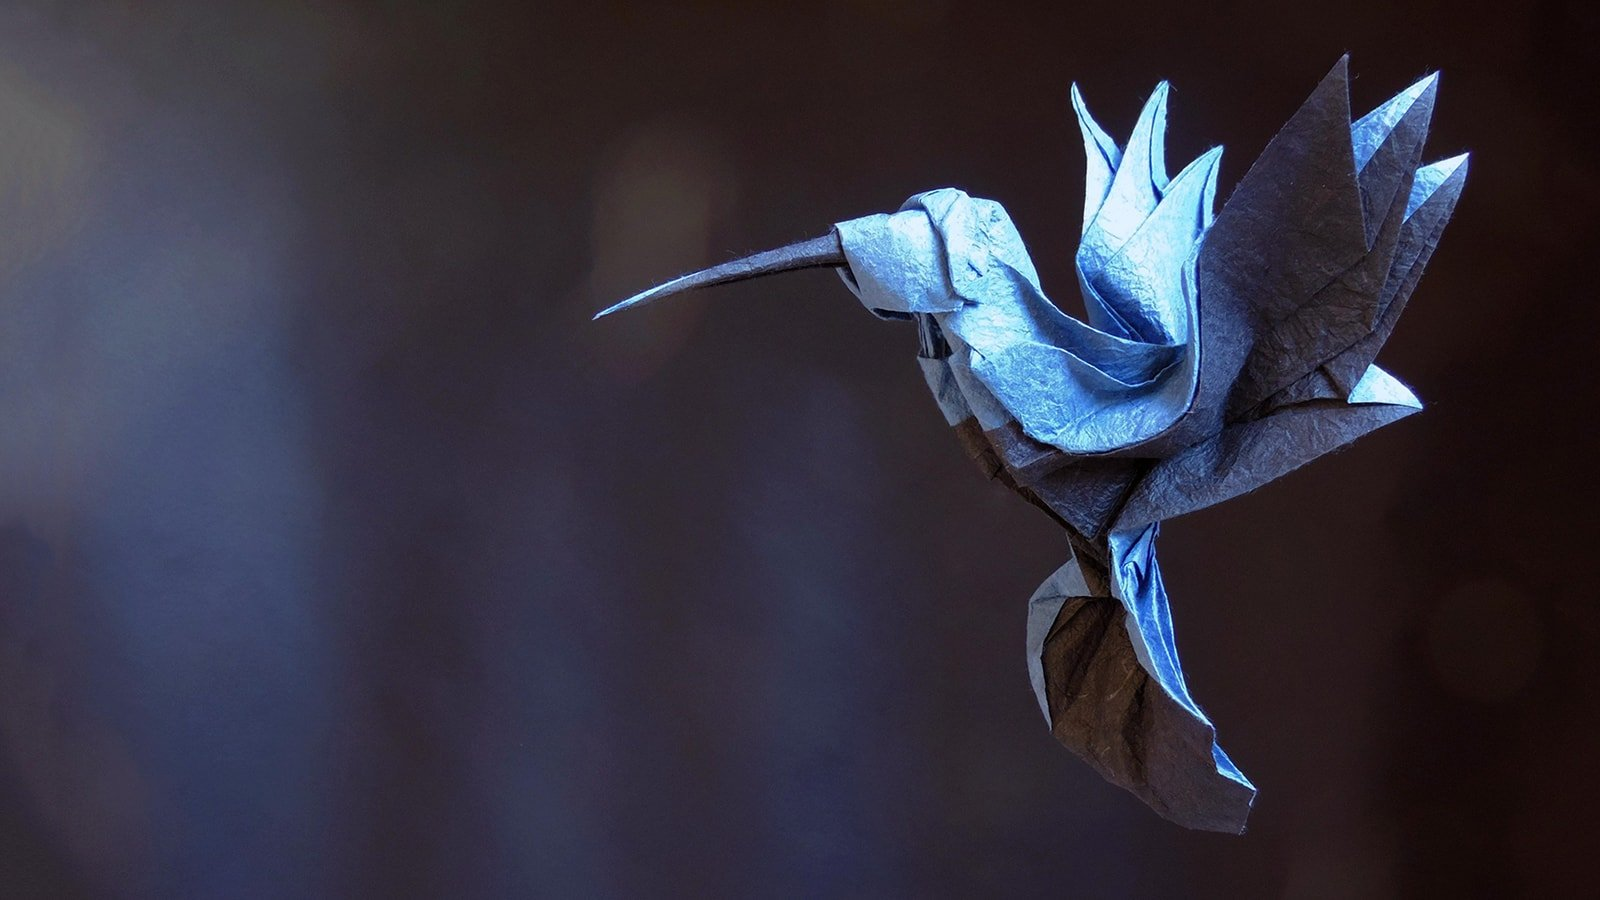 3d origami teal swan by juls2 on DeviantArt | Origami 3d, Origami ... | 900x1600